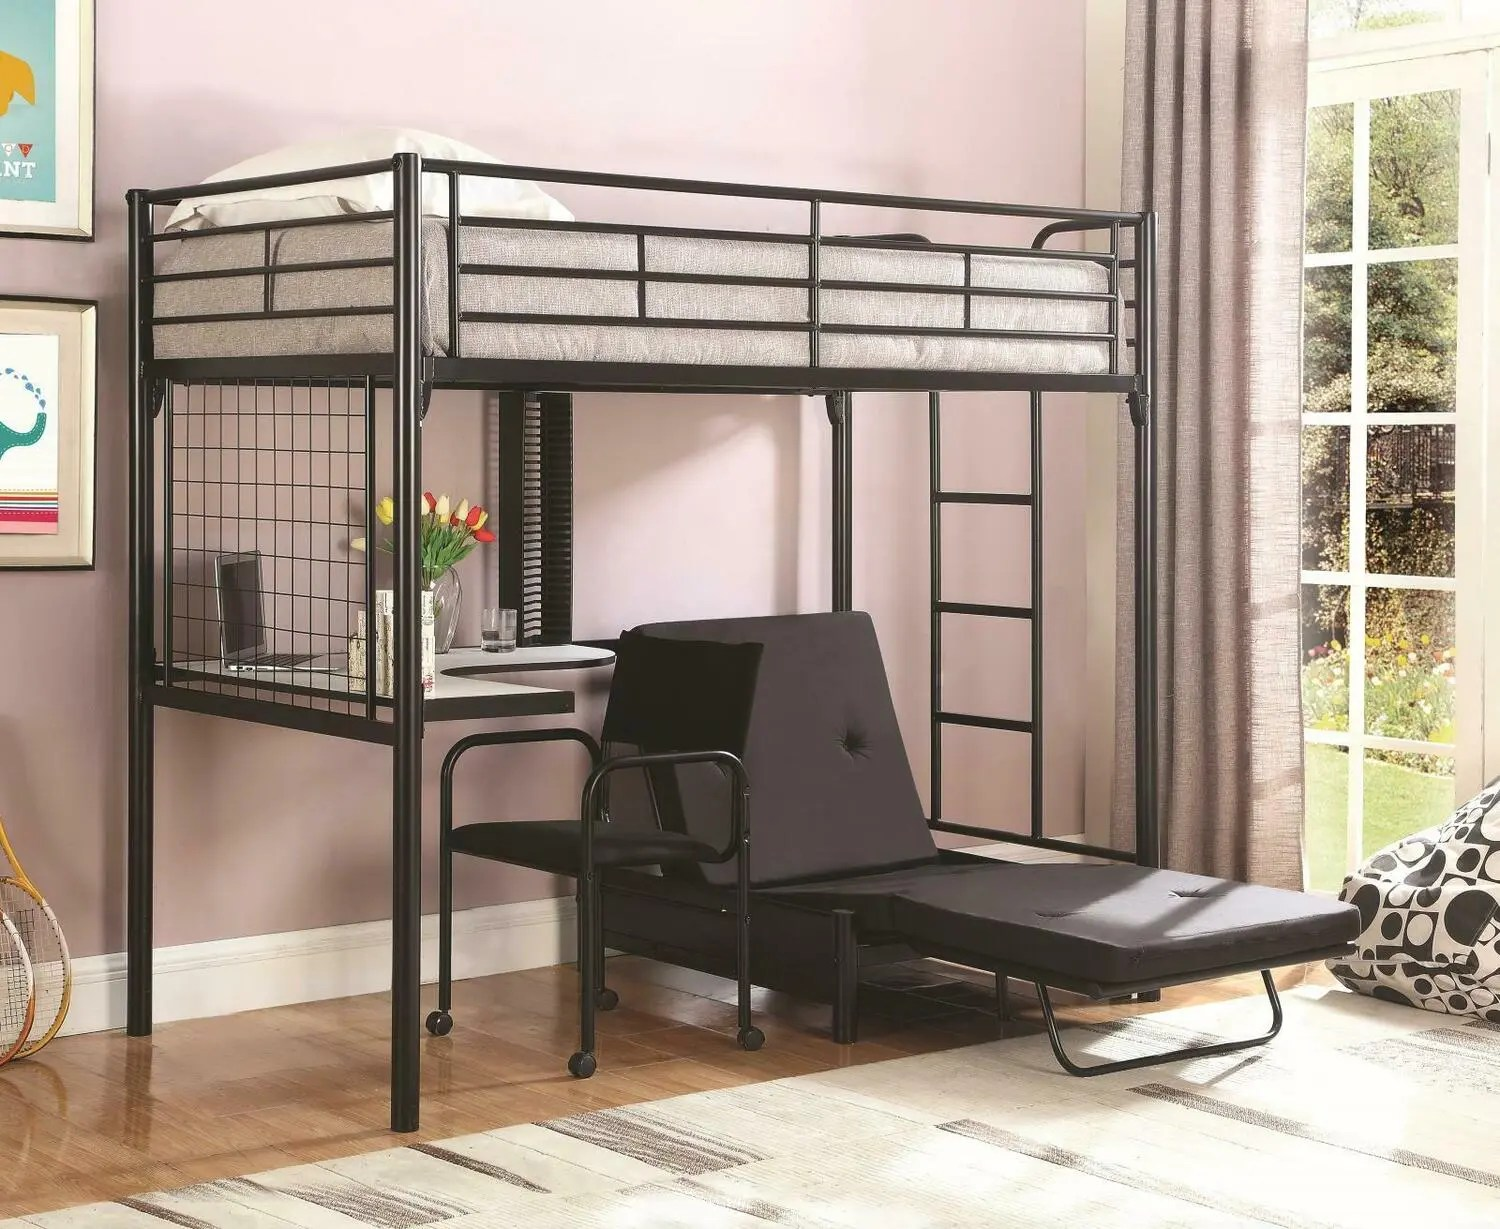 2209 In By Coaster In Monroe Wa Contemporary Metal Loft Bunk Bed With Desk